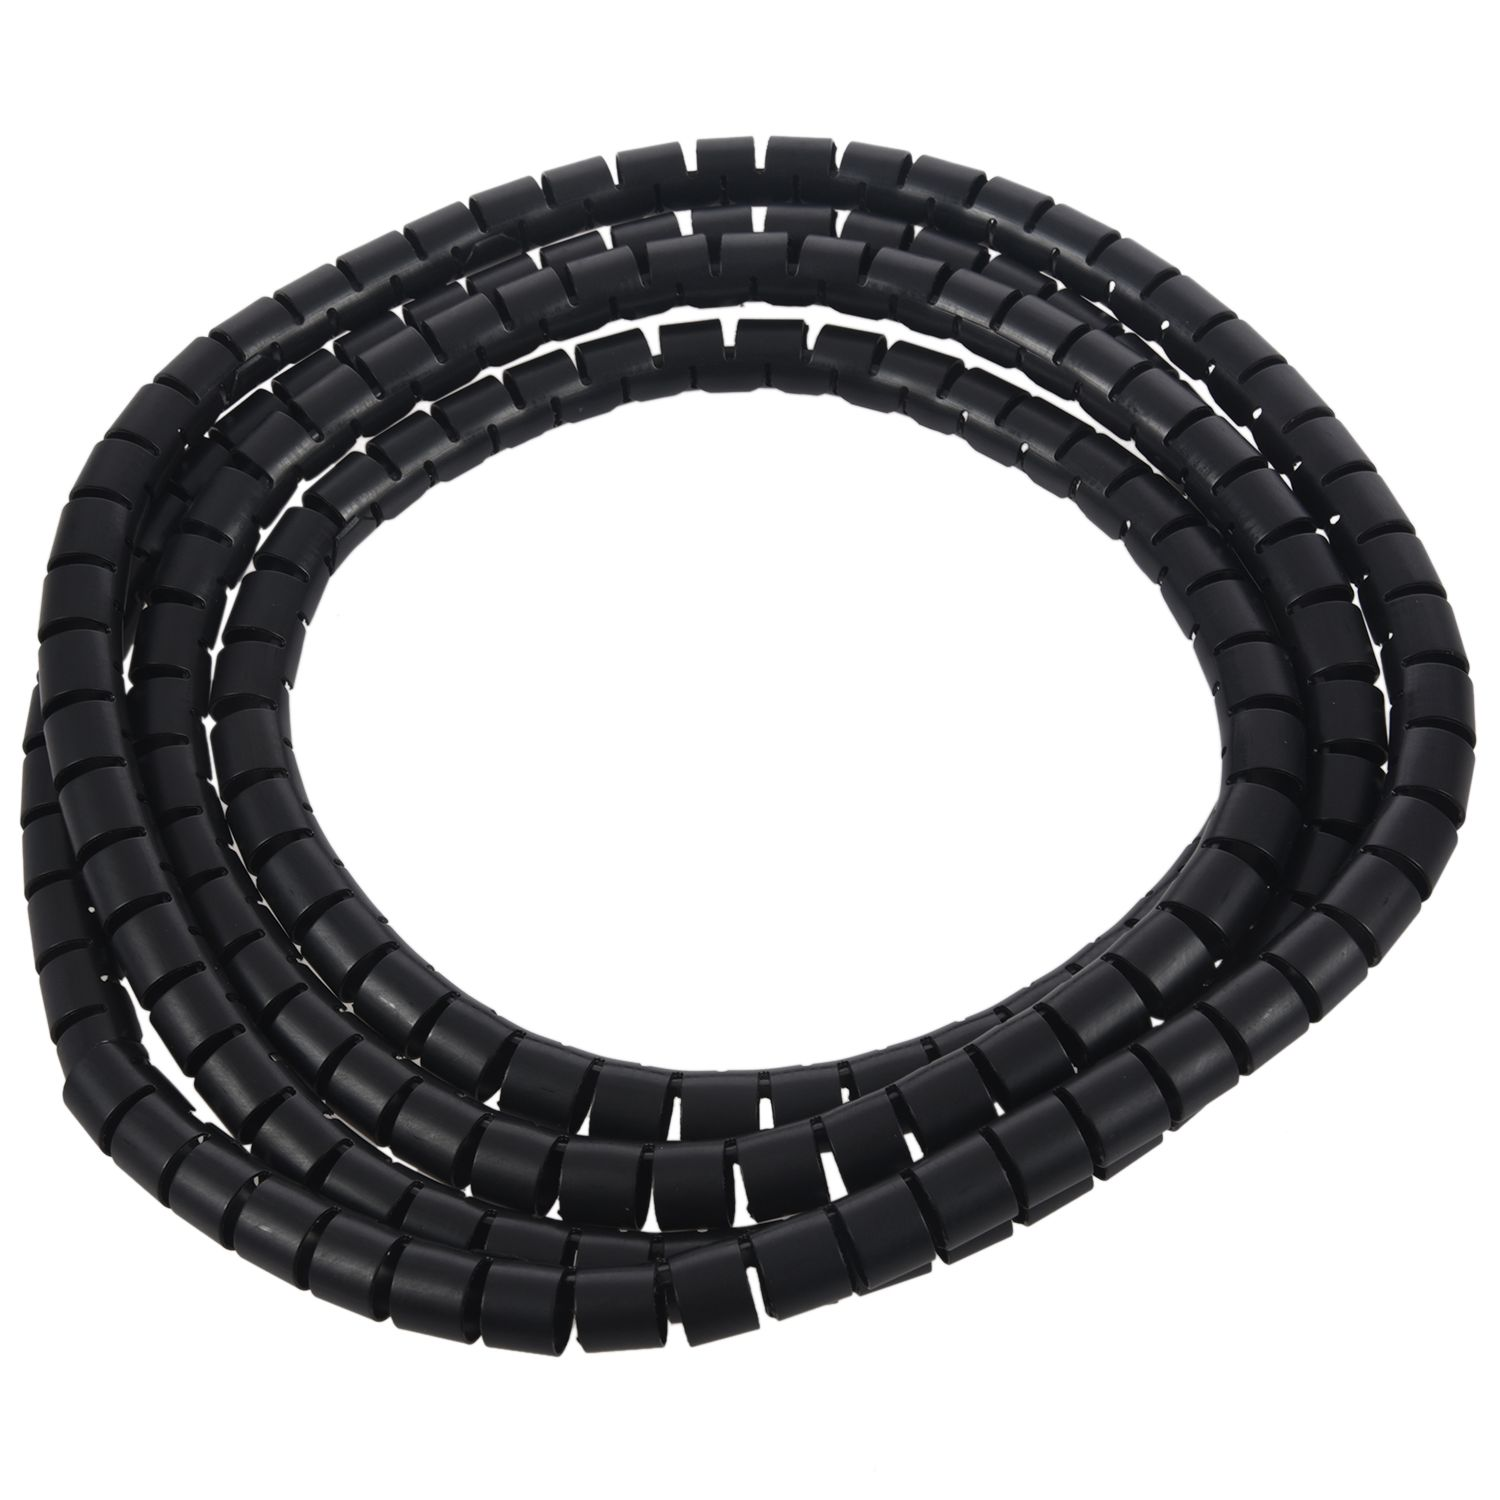 2m 10mm Interior Dia <font><b>Cable</b></font> Wire Wrap <font><b>Organizer</b></font> Spiral Tube <font><b>Cable</b></font> Winder Cord Protector Flexible Management Wire Storage Pipe image